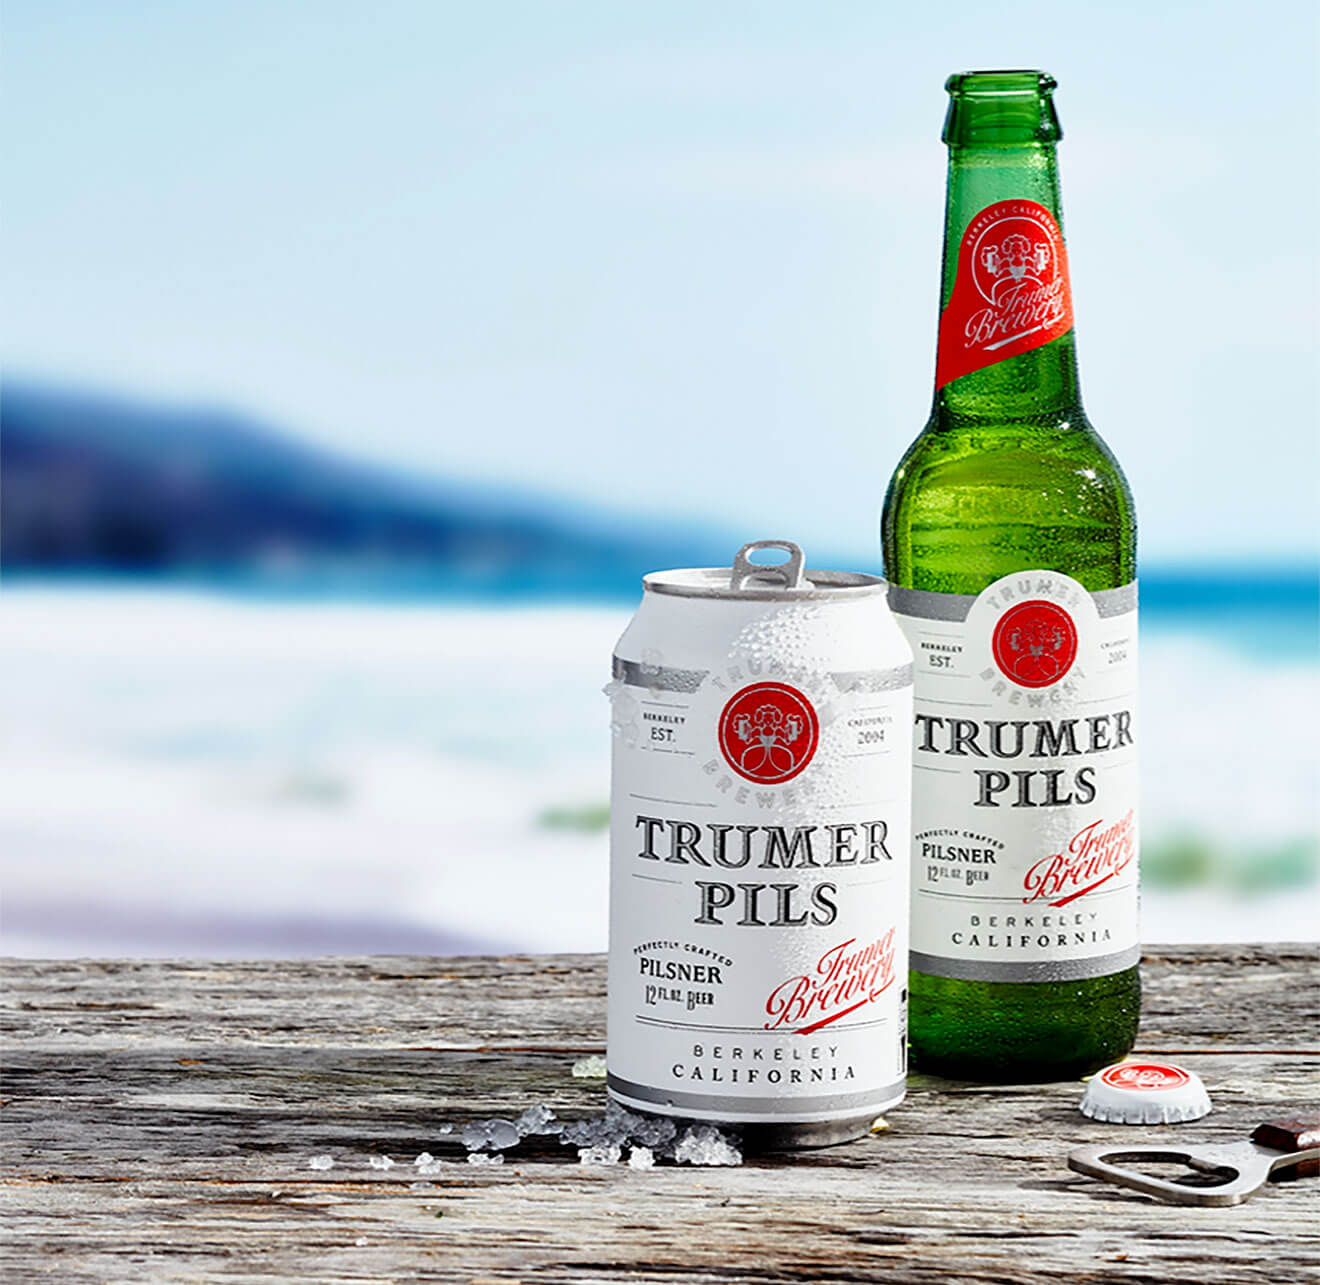 Trumer Pils New Packaging Design, bottle and can, beach scene